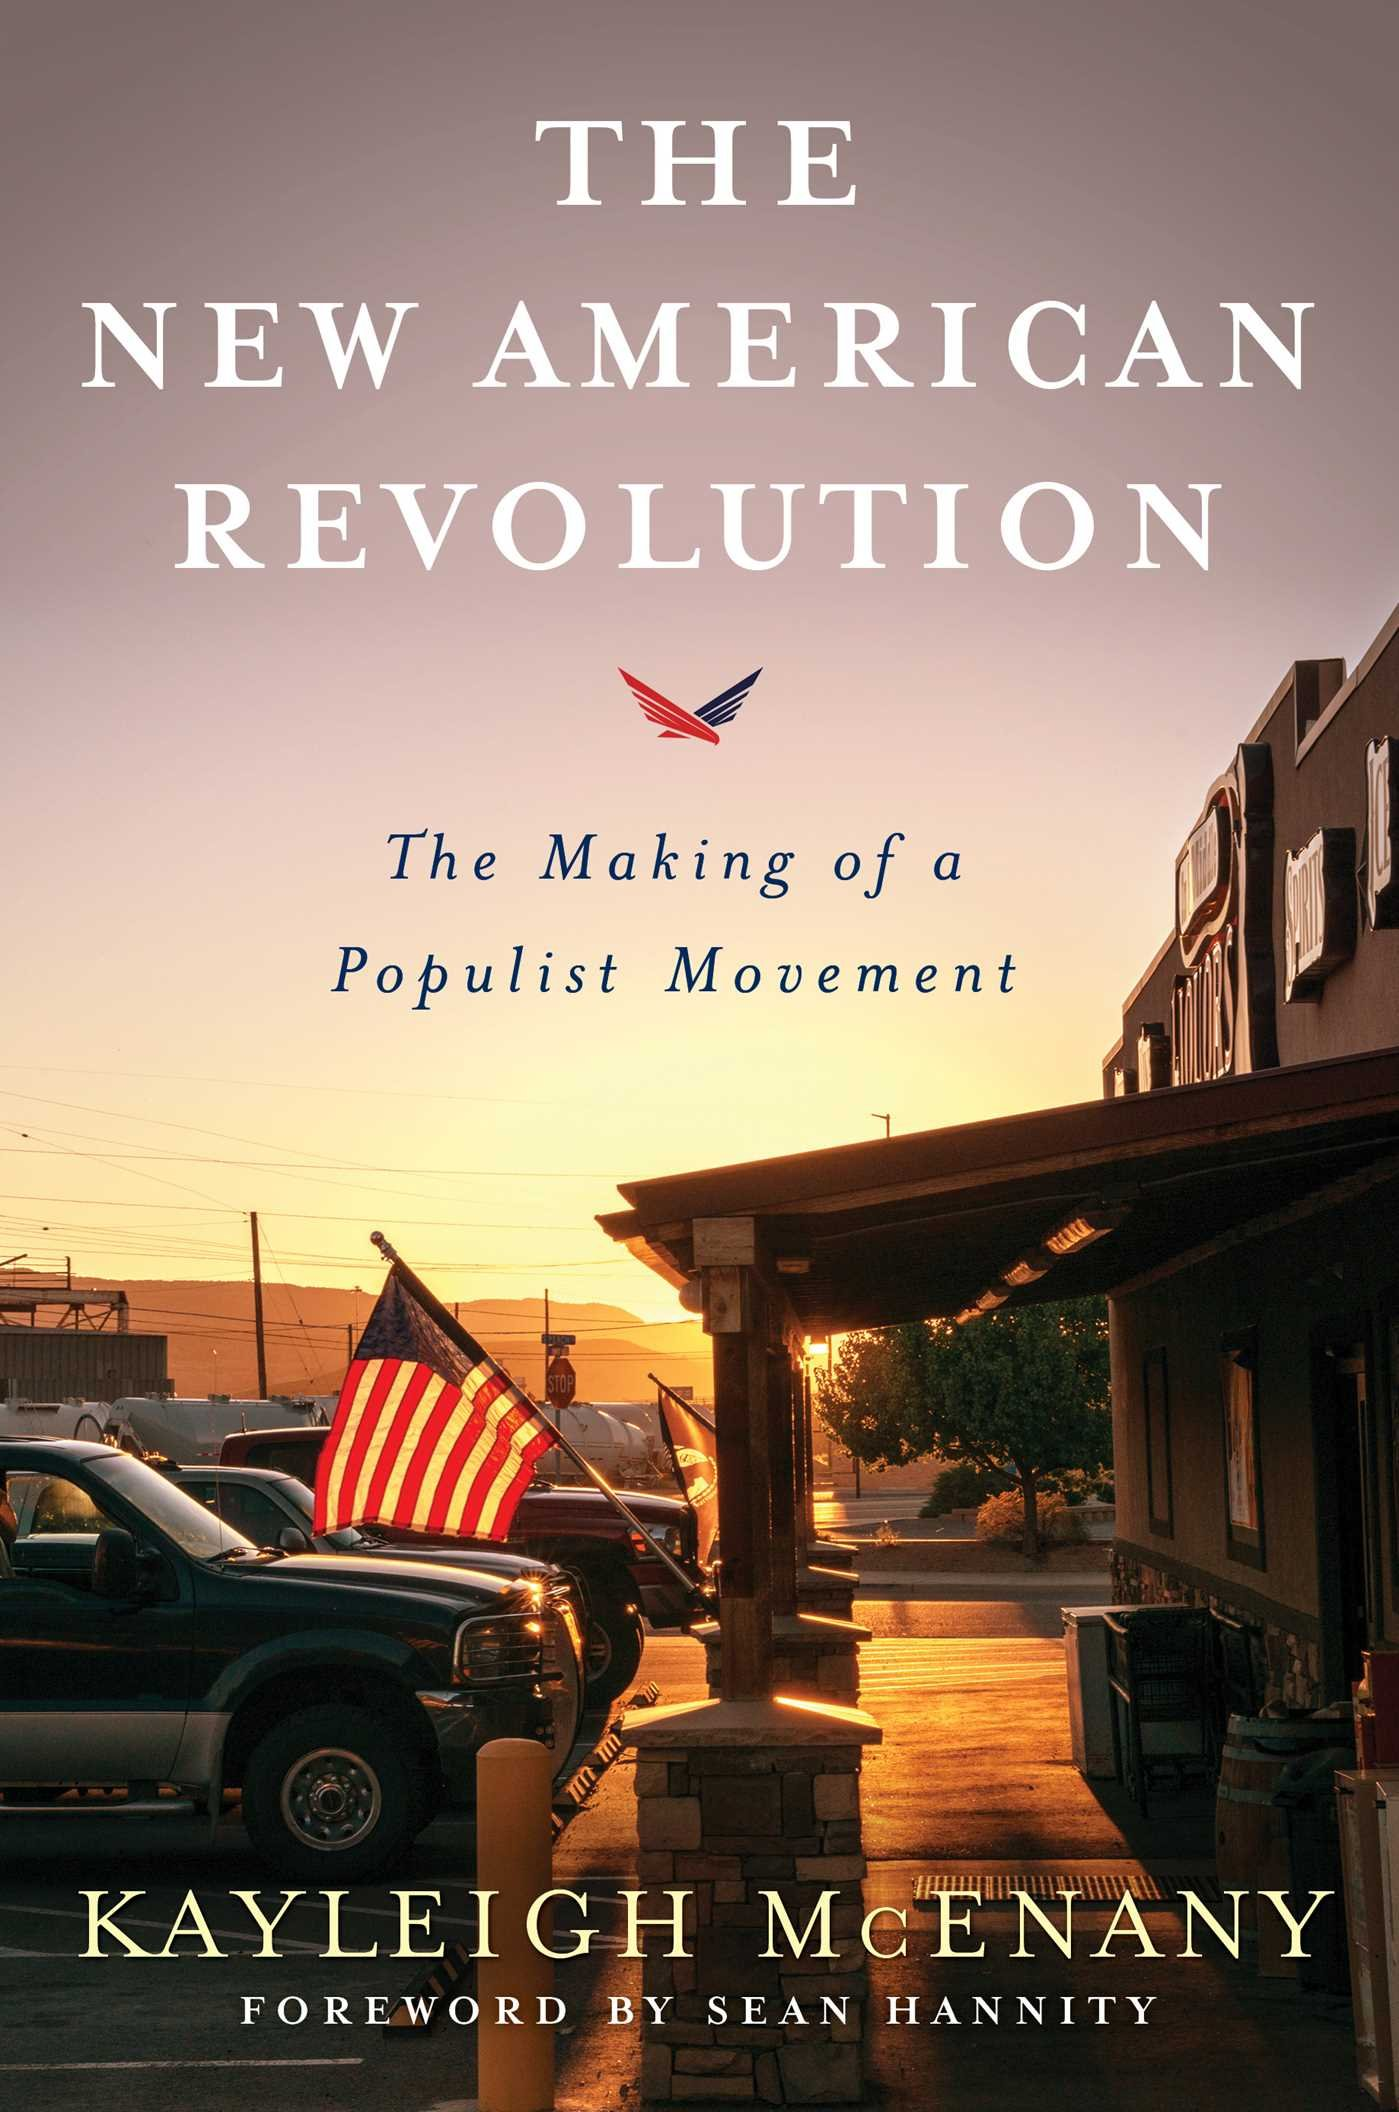 The new American revolution : the making of a populist movement /                 Kayleigh McEnany